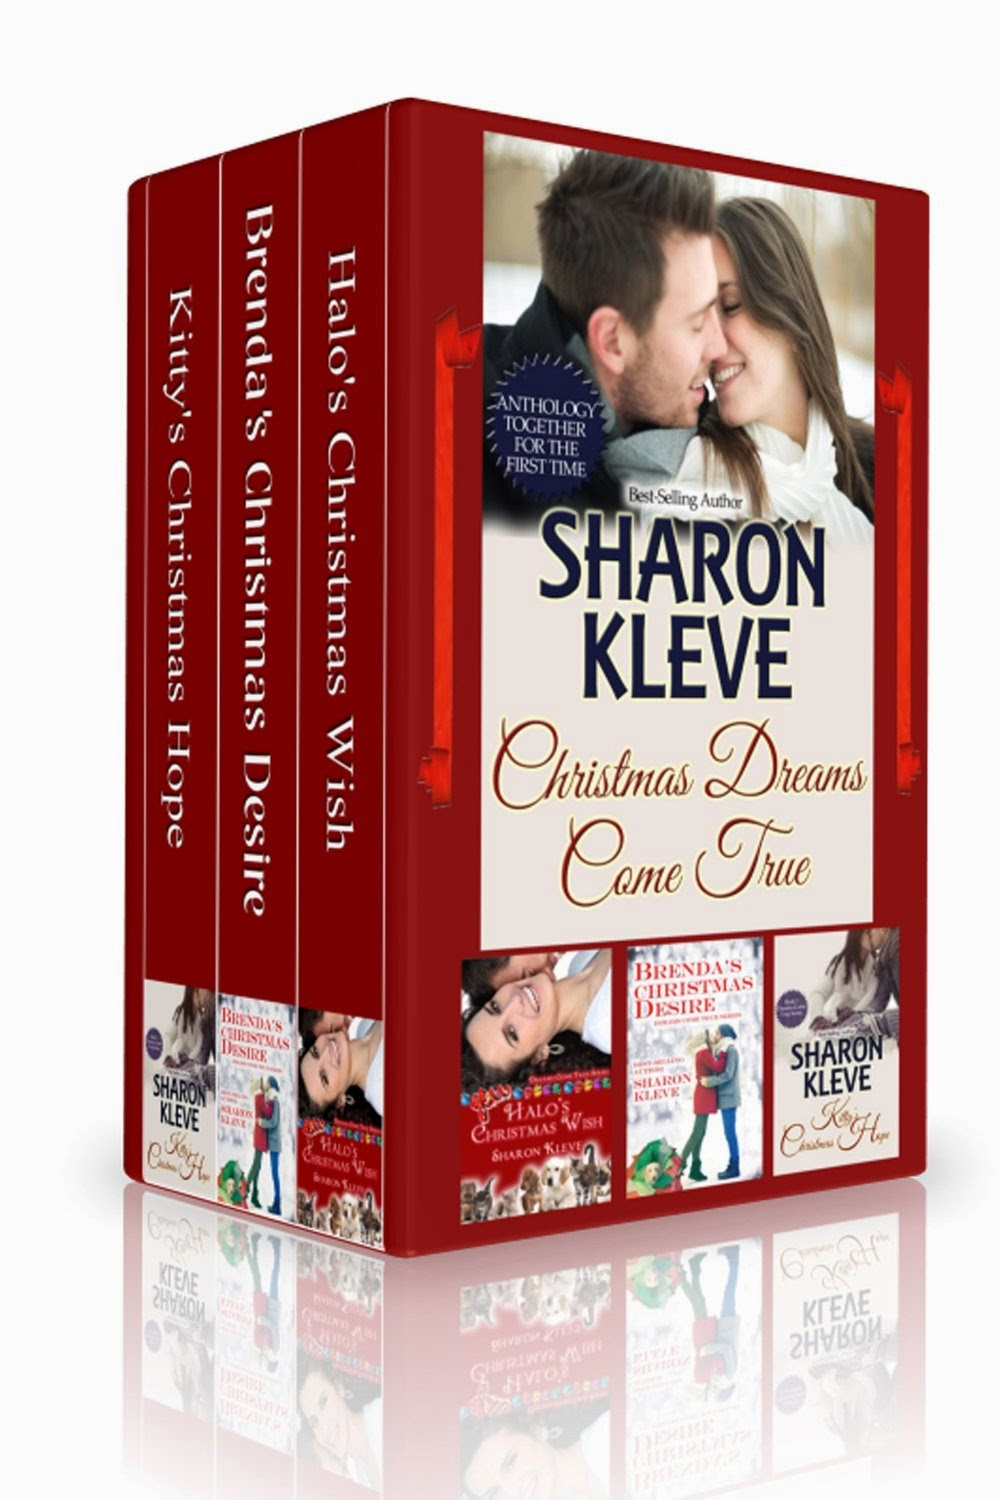 http://www.amazon.com/Christmas-Dreams-Come-Sharon-Kleve-ebook/dp/B00O982PIE/ref=sr_1_4?s=books&ie=UTF8&qid=1421614182&sr=1-4&keywords=sharon+kleve